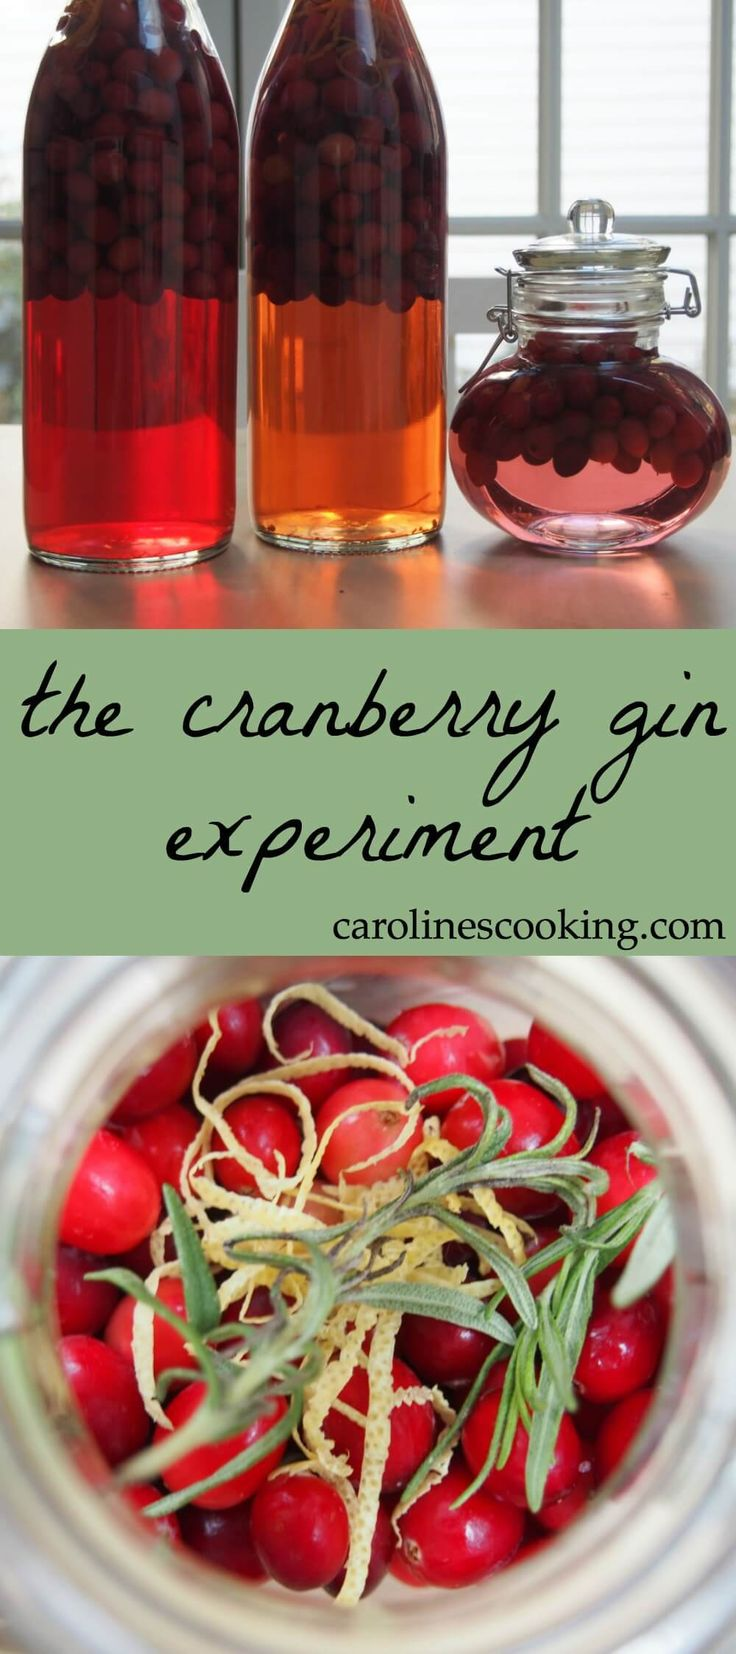 This cranberry gin is a New England take on a British classic, sloe gin- join the experiment to make a great drink for the holidays. See variations on how to make it and follow through to the final results with tasting notes and suggestions for using it.